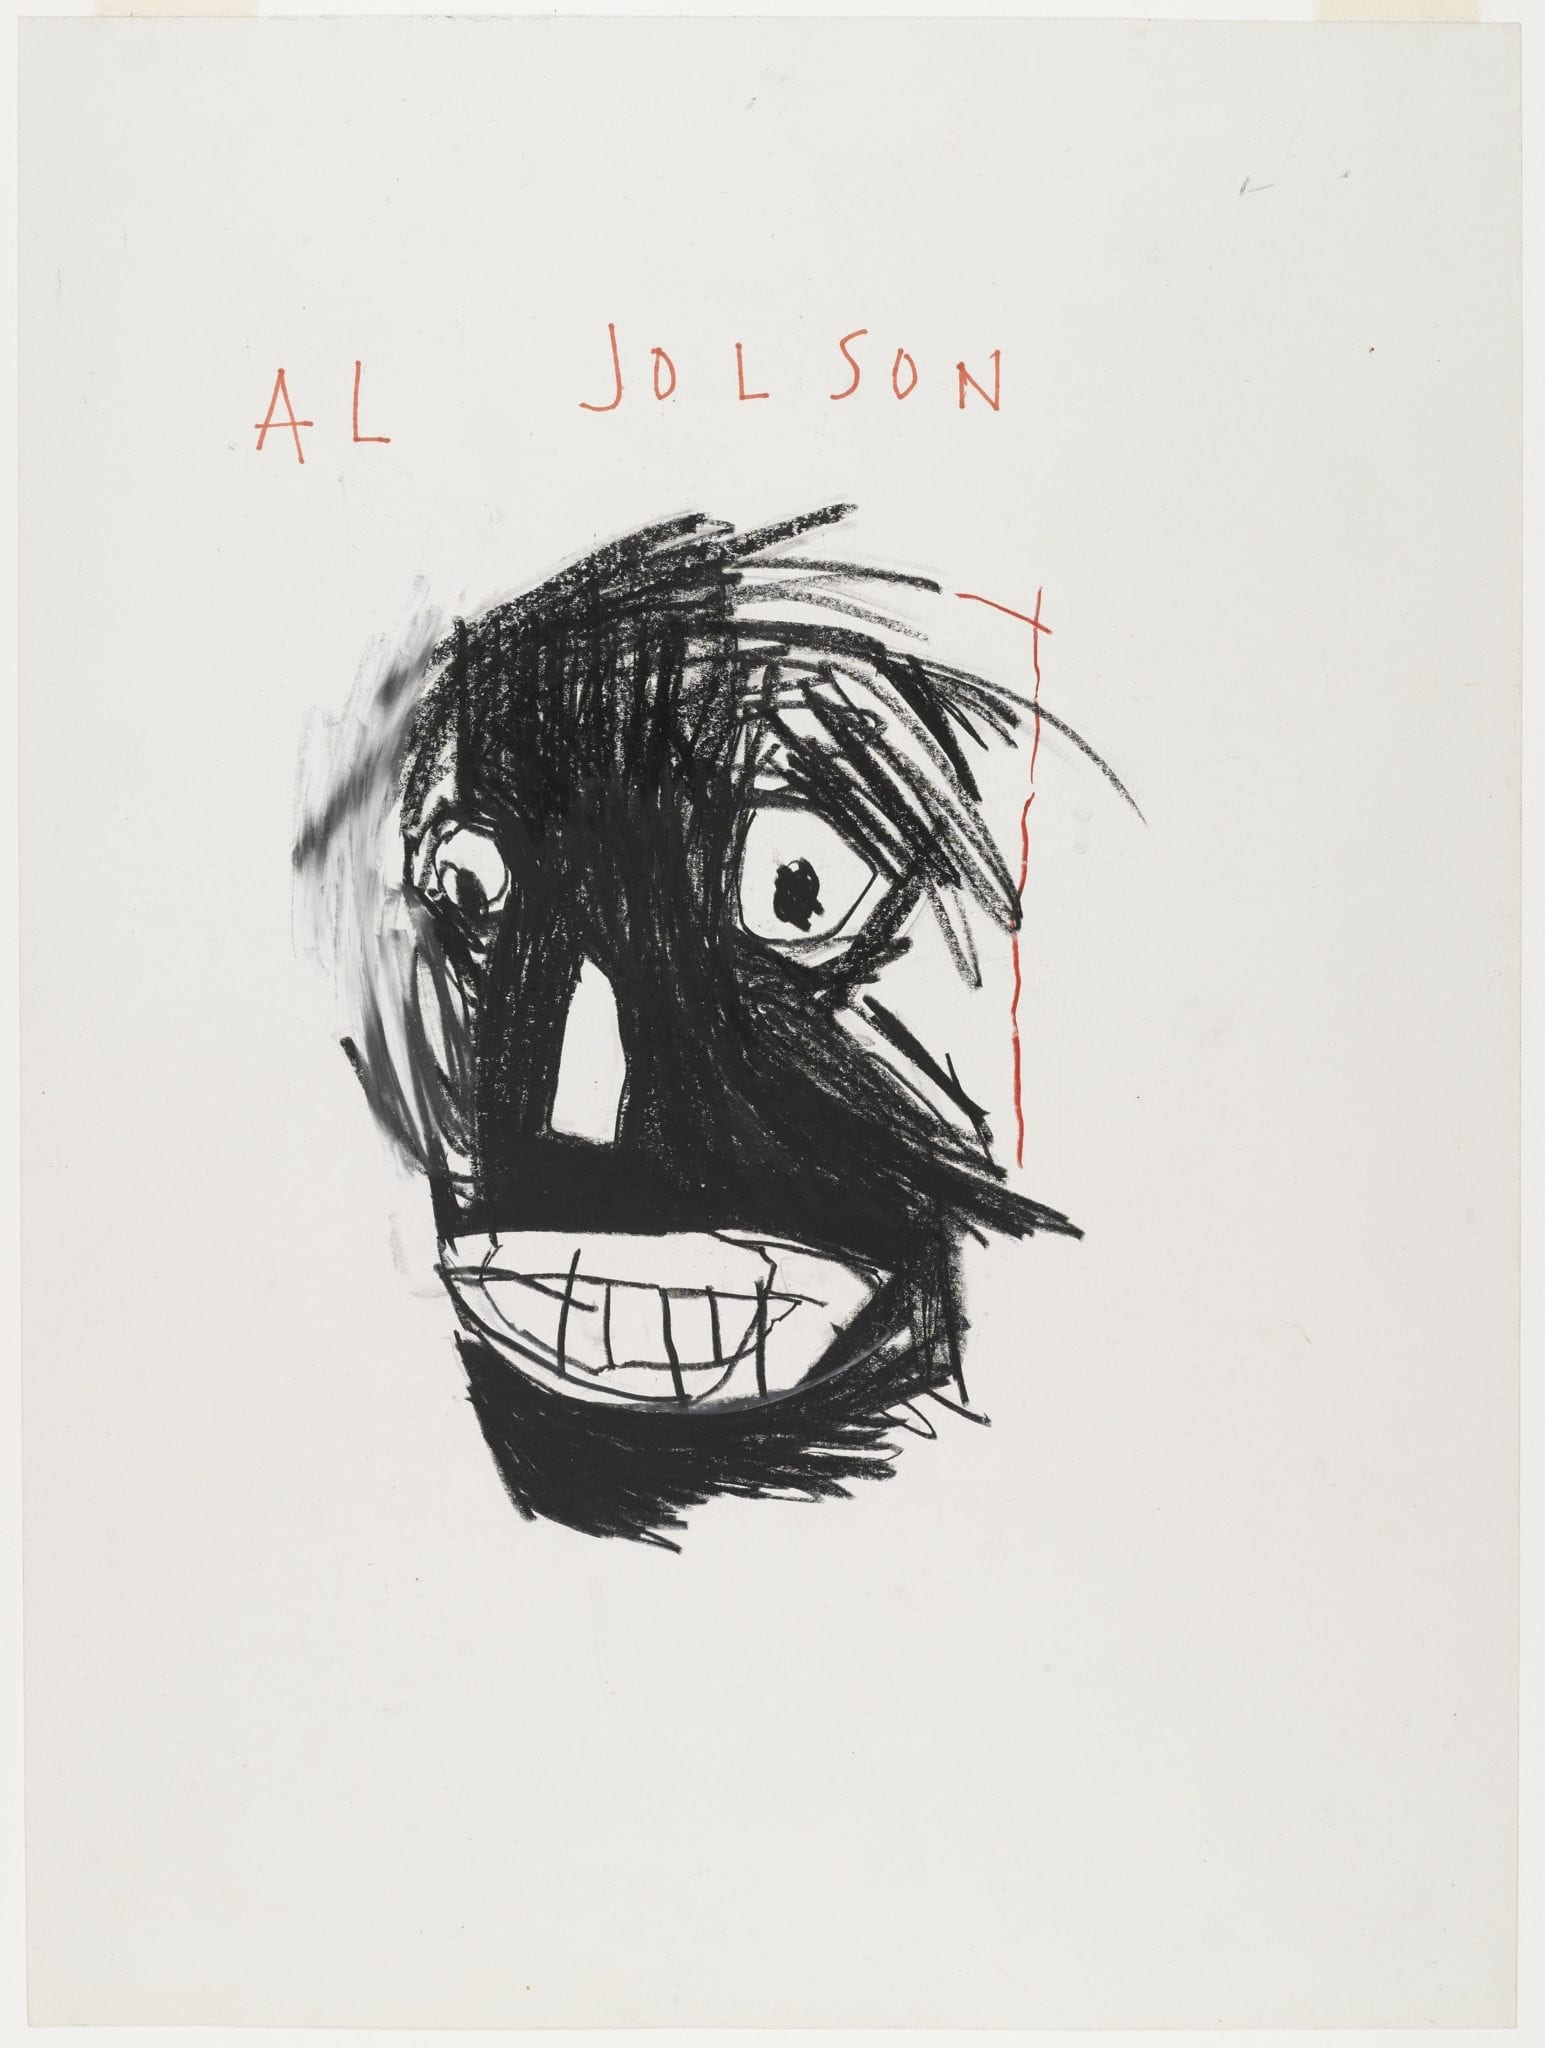 Jean-Michel Basquiat (American, 1960–1988). Untitled Notebook Page, ca.1987. Wax crayon on ruled notebook paper, 9 5/8 x 7 5/8 in. (24.5 x 19.4 cm). Collection of Larry Warsh. © Estate of Jean-Michel Basquiat, all rights reserved. Licensed by Artestar, New York. Photo: Sarah DeSantis, Brooklyn Museum.Jean-MichelBasquiat (American, 1960–1988). Untitled Notebook Page, 1980–1981. Metallic ink and ink wax crayon on ruled notebook paper, 9 5/8 x 7 5/8 in. (24.5 x 19.4 cm). Collection of Larry Warsh. © Estate of Jean-Michel Basquiat, all rights reserved. Licensed by Artestar, New York. Photo: Sarah DeSantis, Brooklyn Museum.Jean-Michel Basquiat (American, 1960–1988). Al Jolson, 1981. Oilstick on paper, 24 x 18 in. (61 x 45.7 cm). Brooklyn Museum, Gift of Estelle Schwartz, 87.47. © Estate of Jean-Michel Basquiat, all rights reserved. Licensed by Artestar, New York. Photo: Jonathan Dorado, Brooklyn Museum.